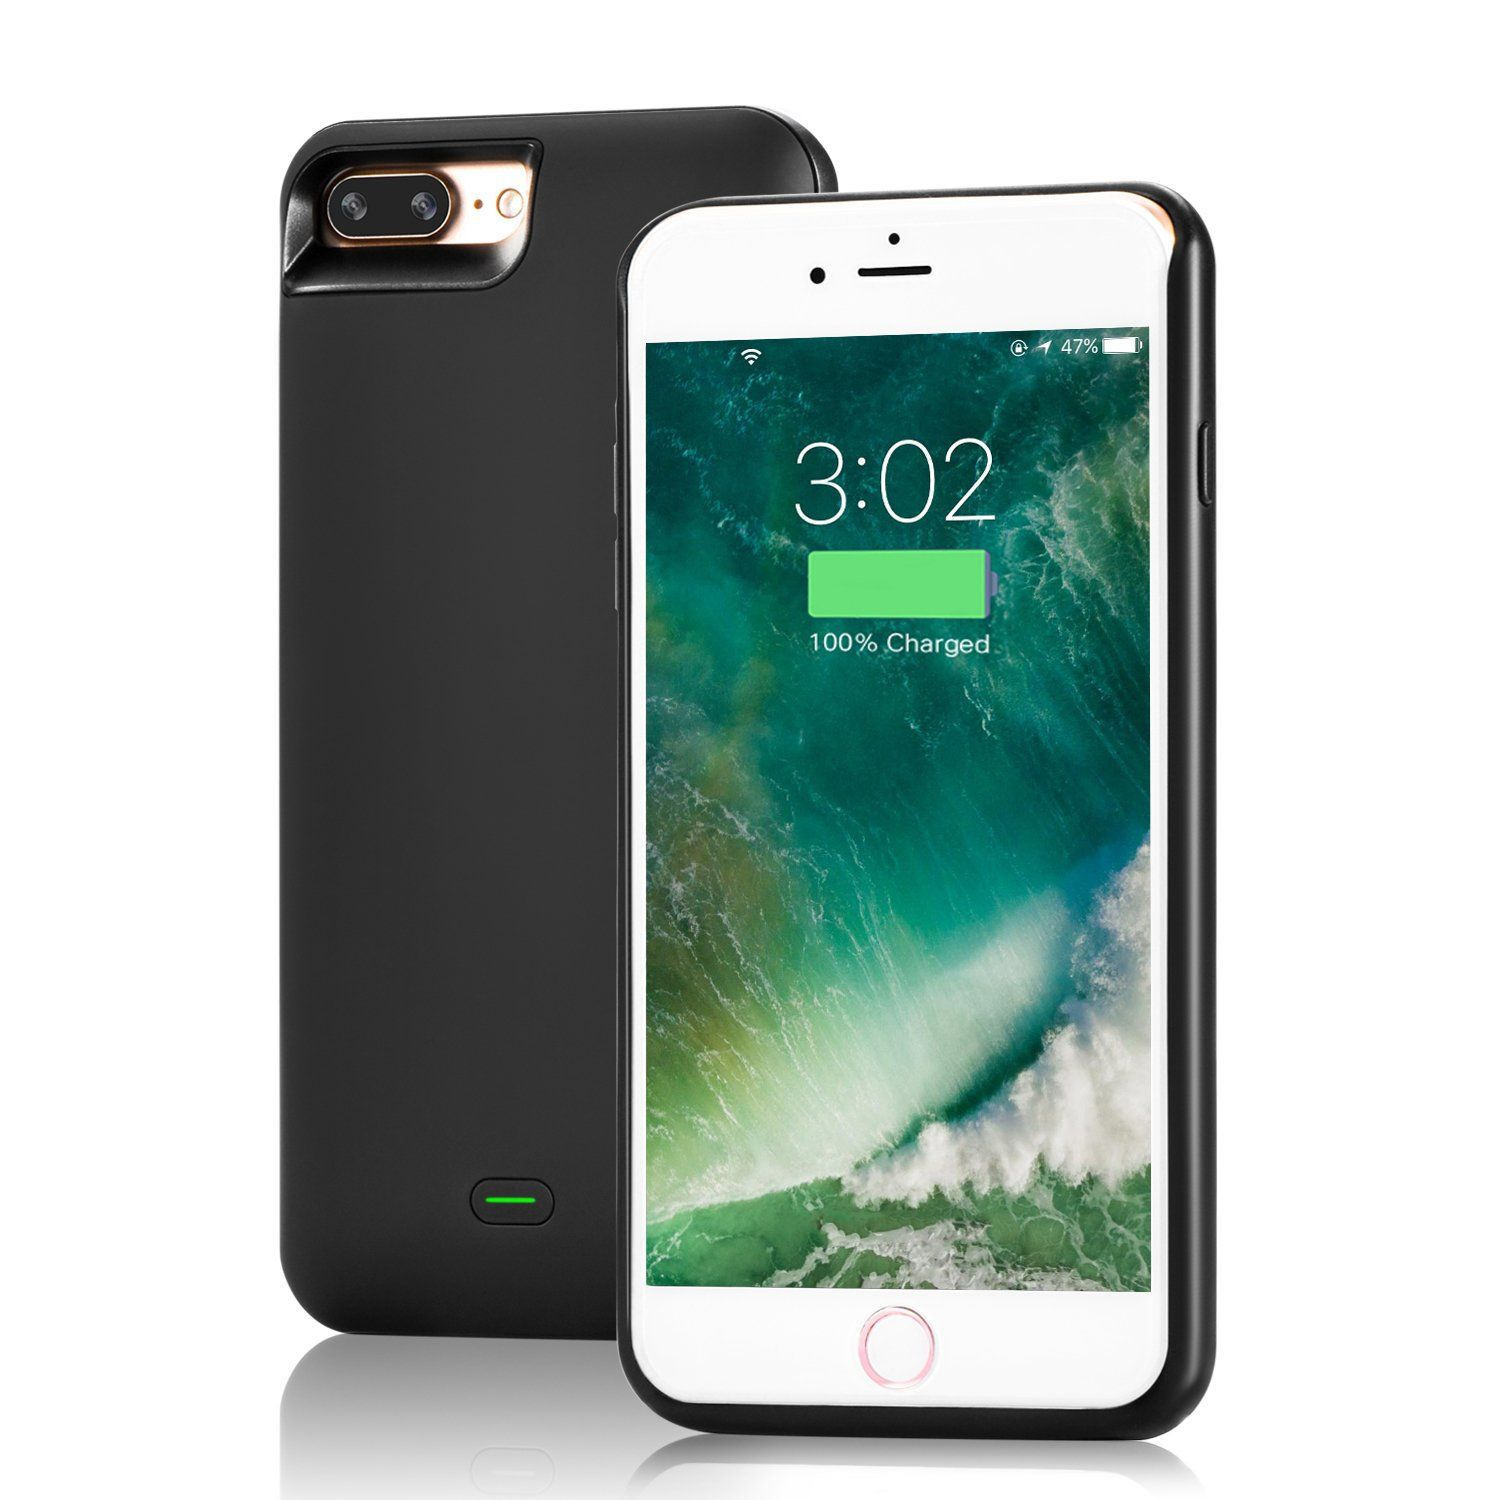 Cell phones amp accessories gt cell phone accessories gt chargers - Iphone 7 Battery Case Oldboy Iphone 7 Charger Ultra Slim Ios 10